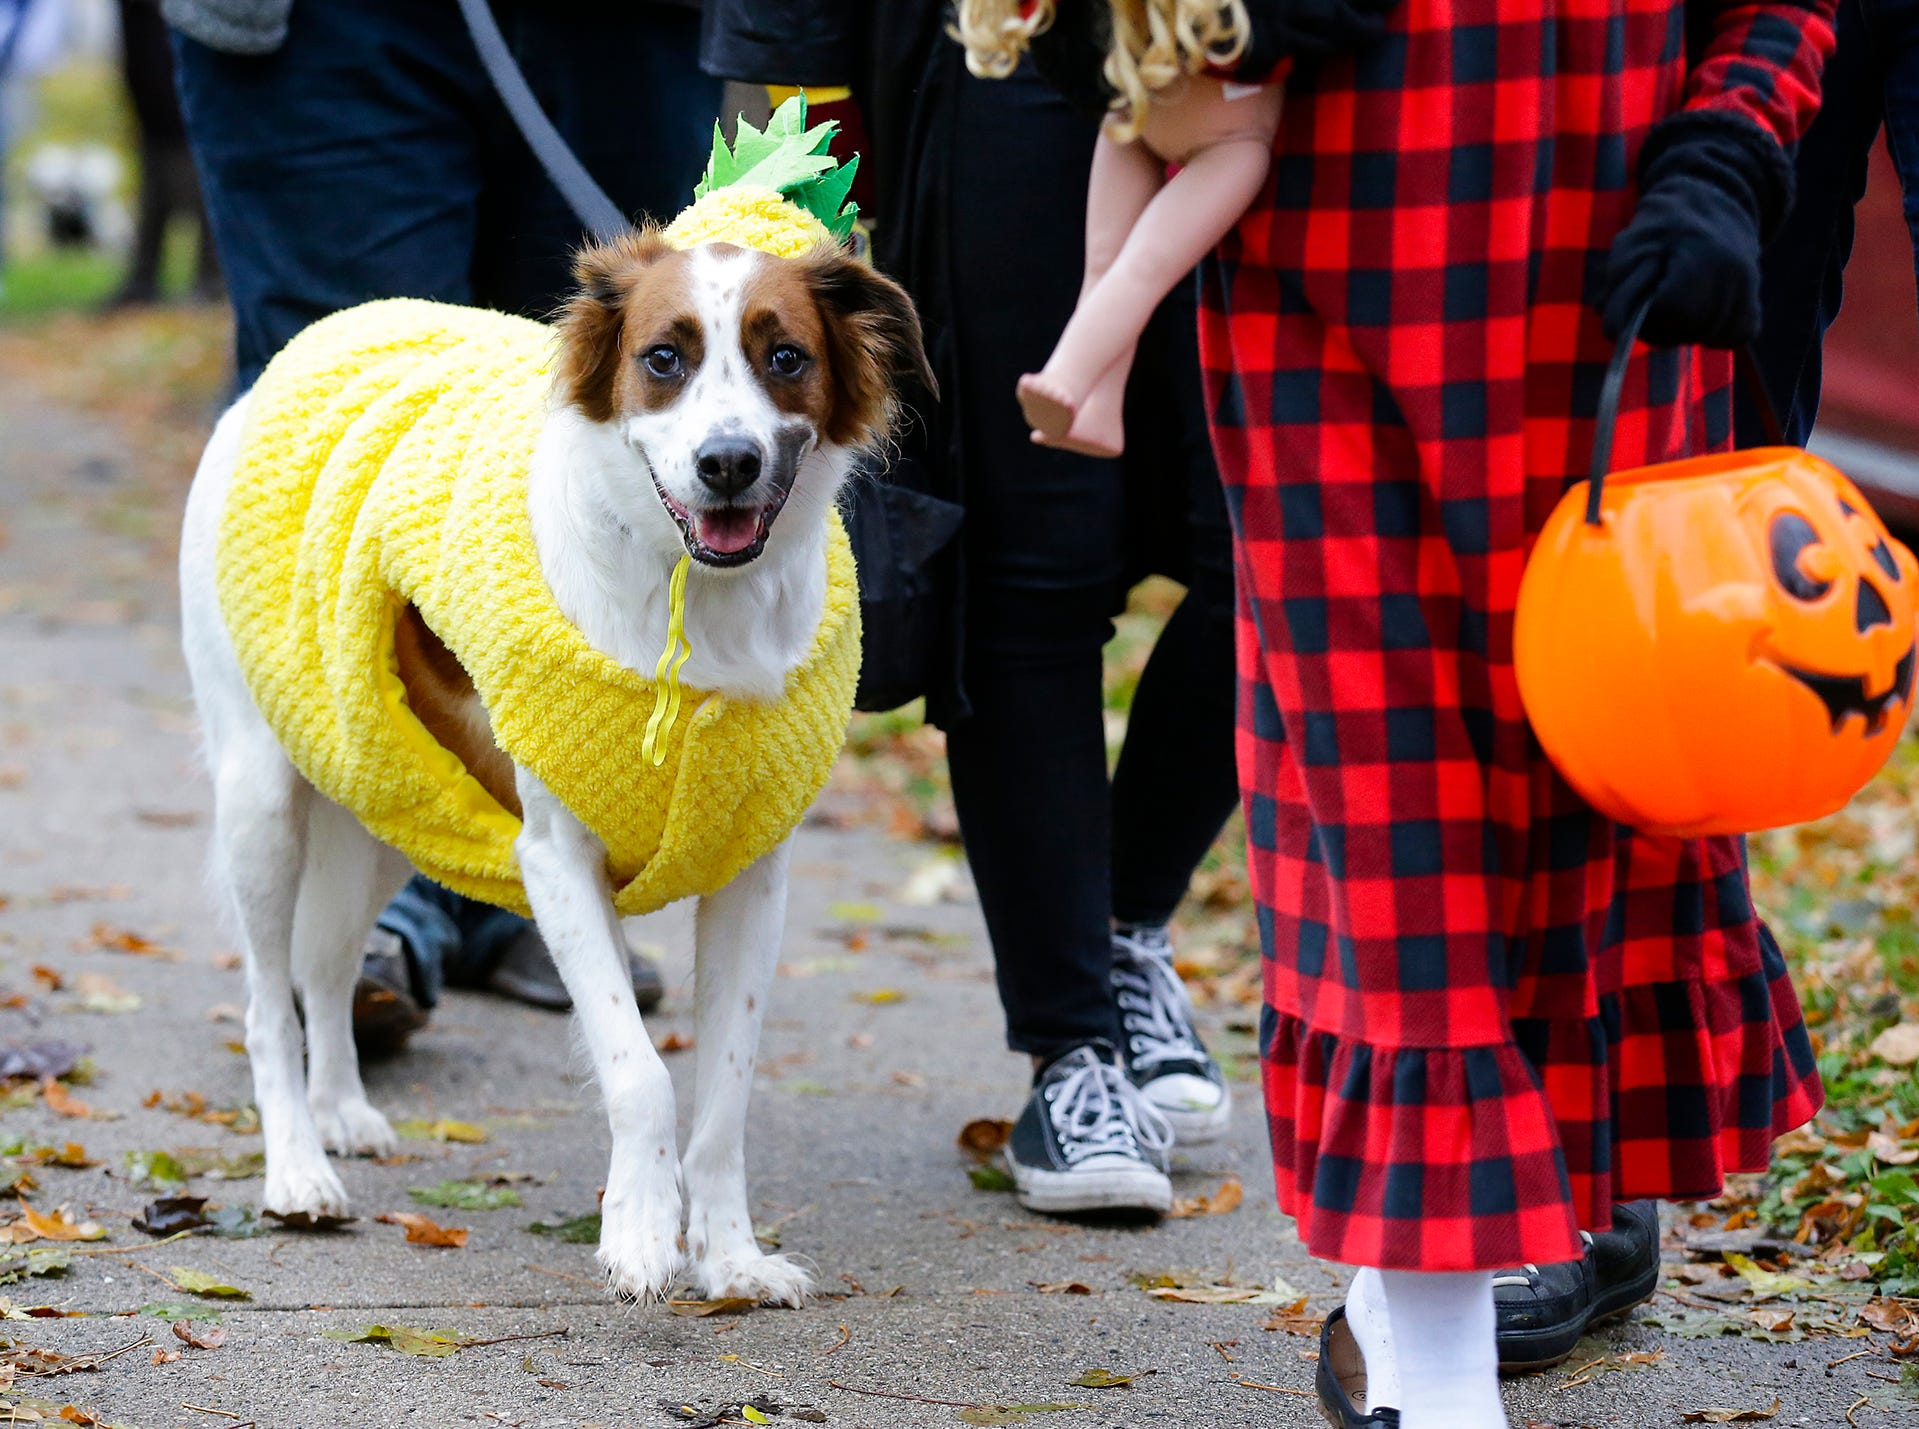 Jake, dressed as a pineapple, was out for trick or treat with his owners Mike and Laura Wright of Fond du Lac Sunday, October 28, 2018 in Fond du Lac, Wisconsin. Doug Raflik/USA TODAY NETWORK-Wisconsin